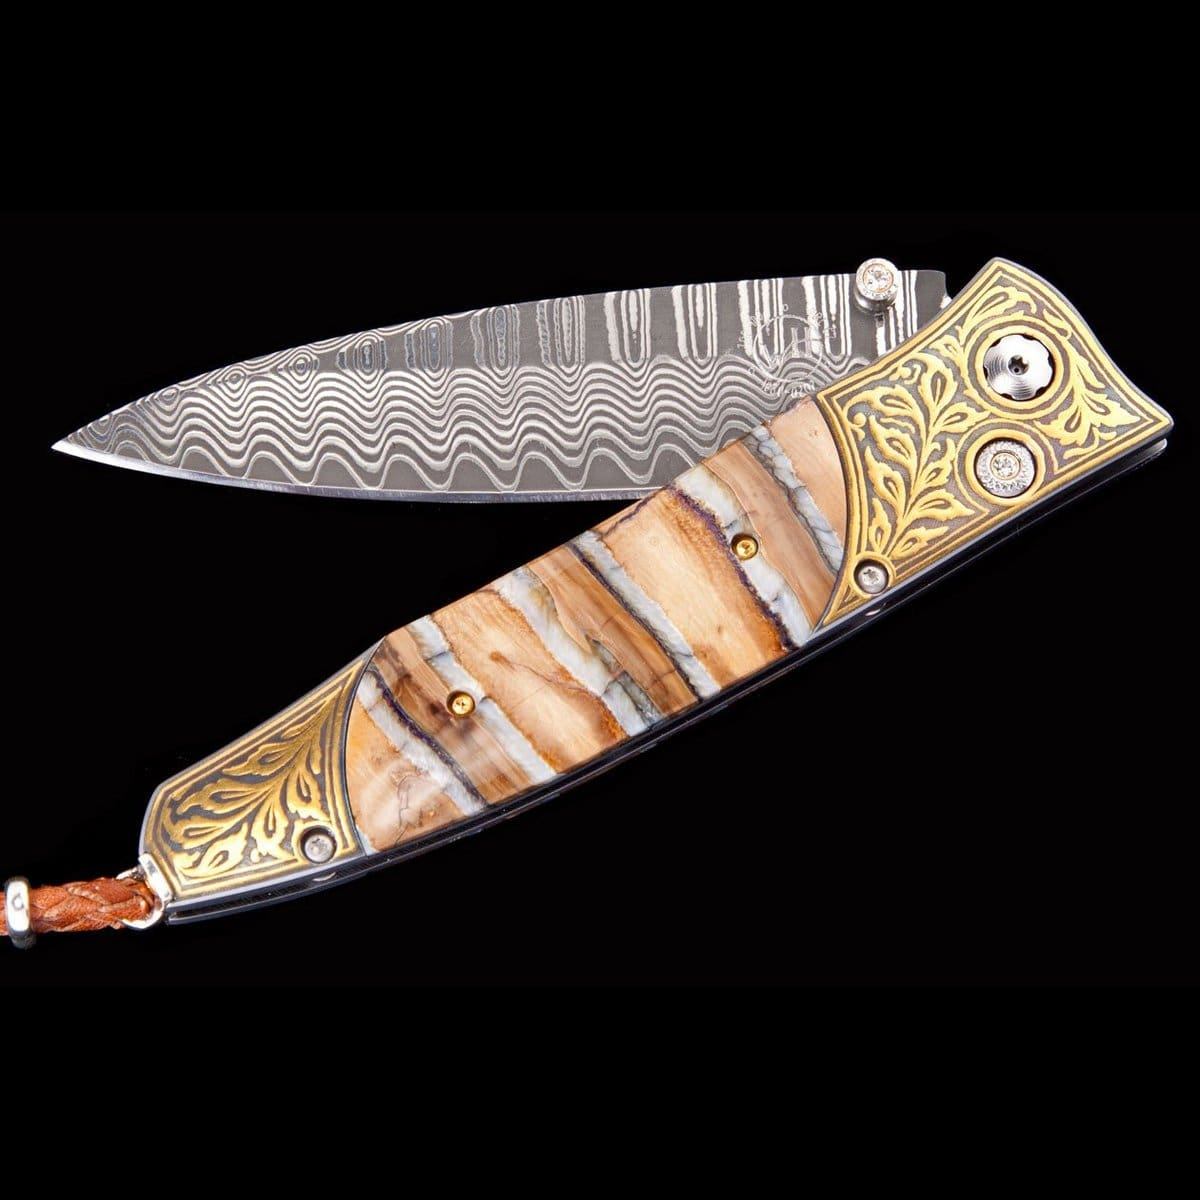 Gentac Golden Age Limited Edition Knife - B30 GOLDEN AGE-William Henry-Renee Taylor Gallery